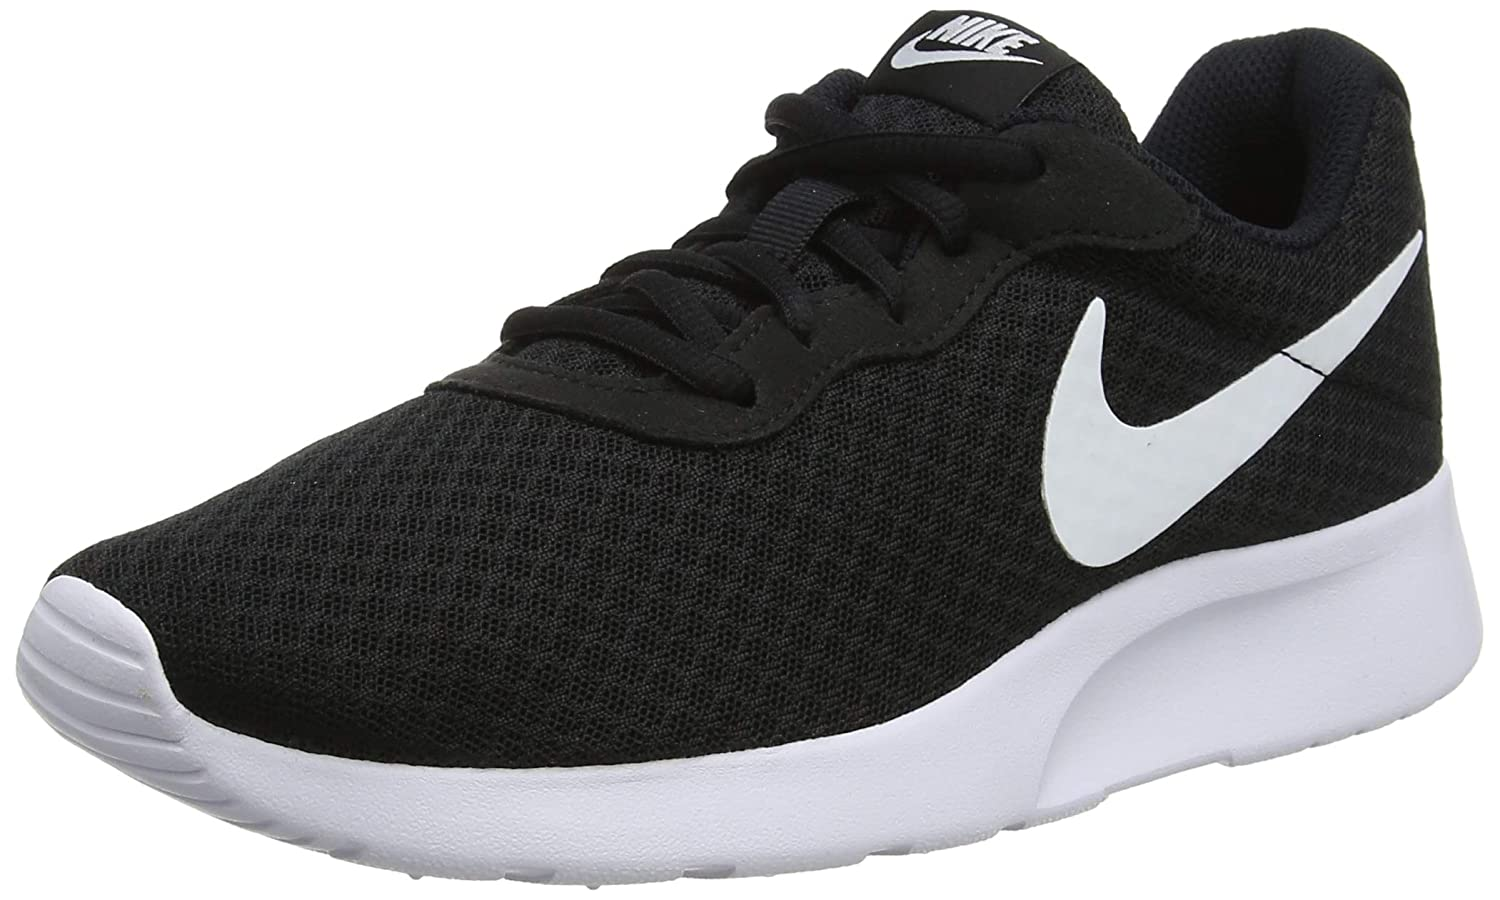 Amazon.com  NIKE Women s Tanjun Running Shoes  Nike  Shoes c060b617a2